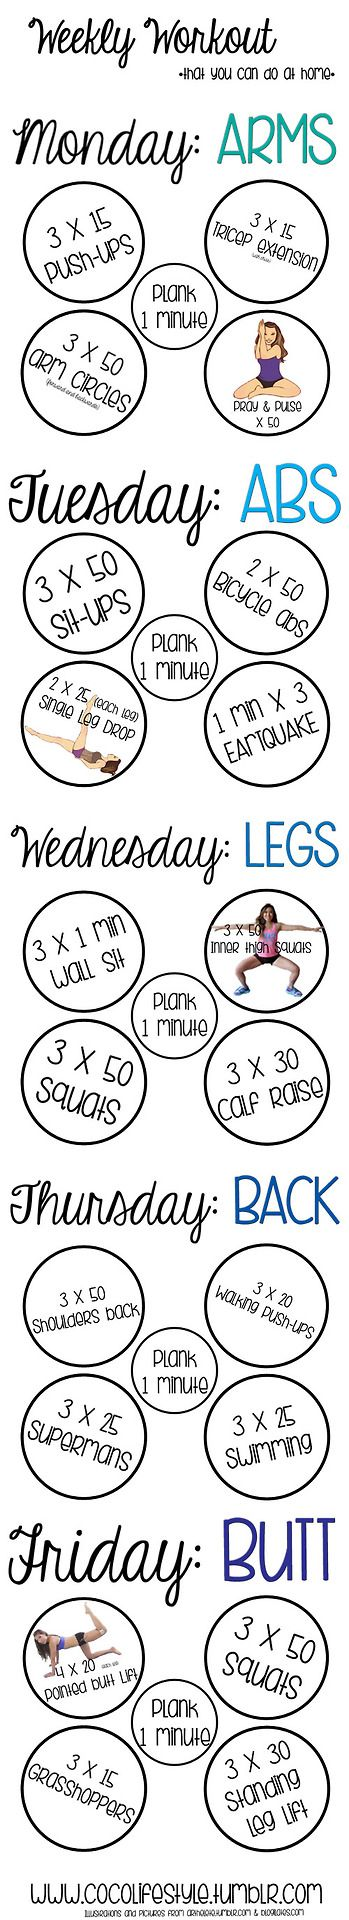 Weekly workout you can do at home